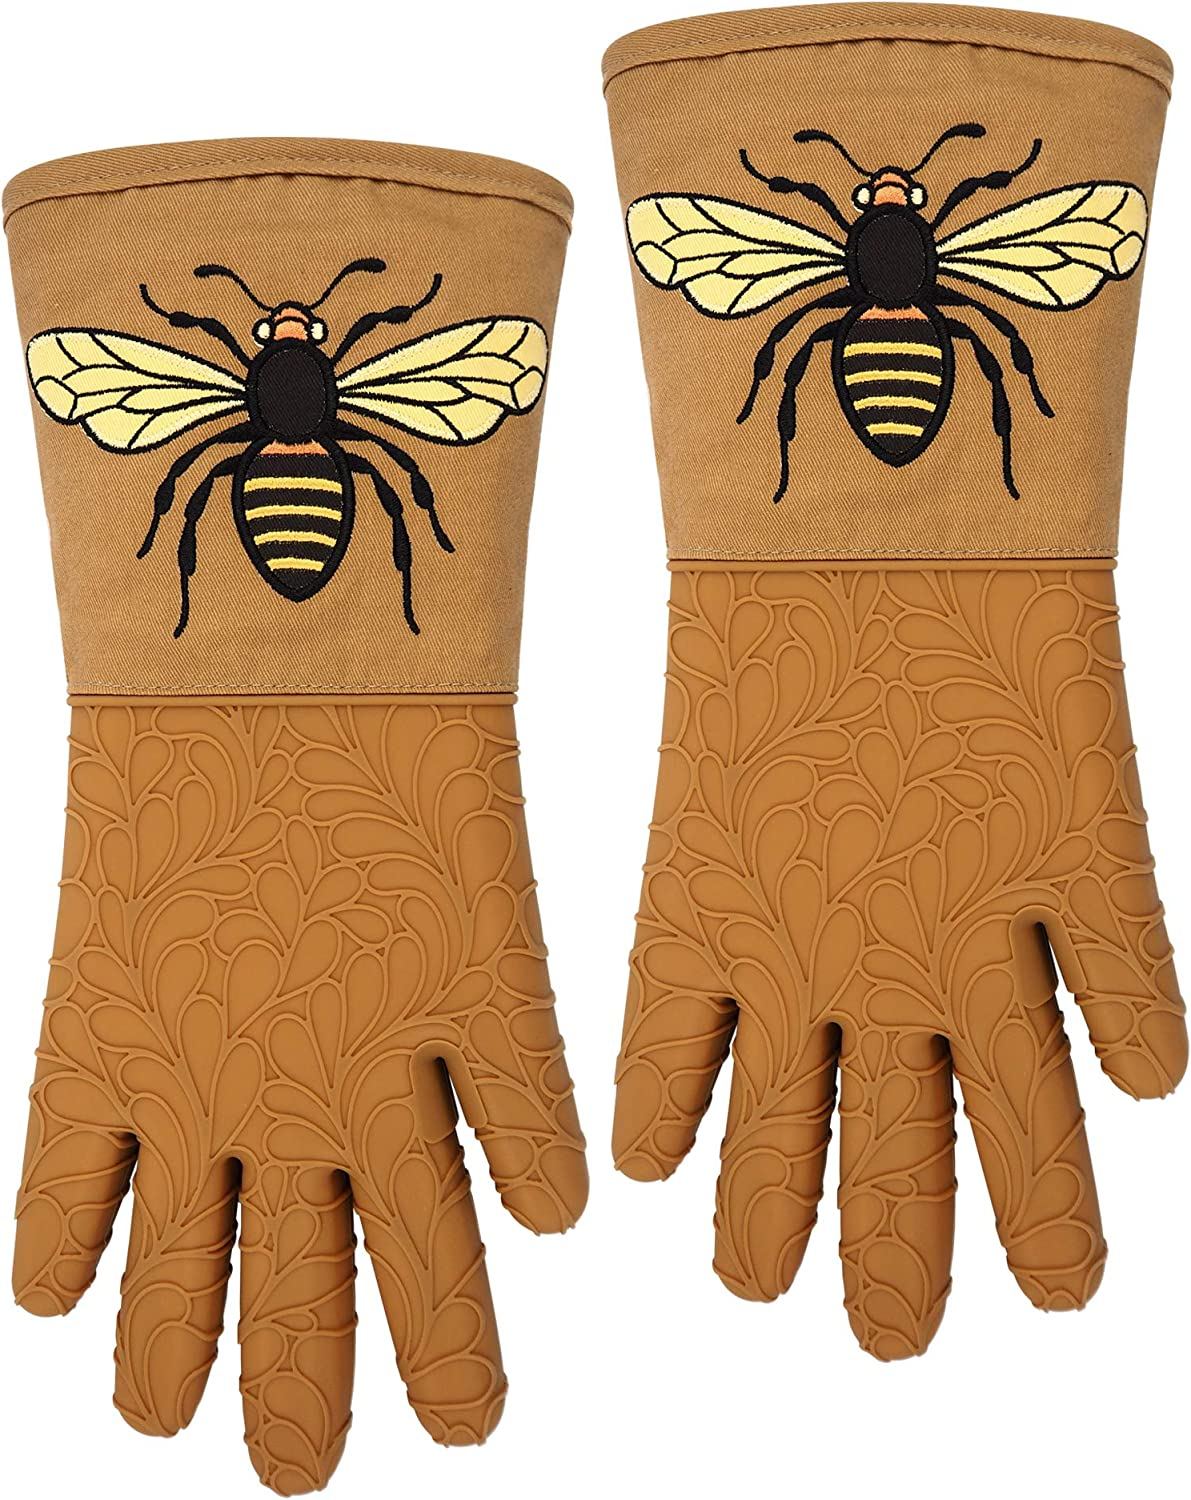 RED LMLDETA Silicone Oven Mitts Gloves 1 Pair Heat Resistant Extra Long 5 Fingers Flexible Non Slip Food Grade Mittens Kitchen Women Men Pot Holders Cooking Baking BBQ (Bee, Earth-Yellow)